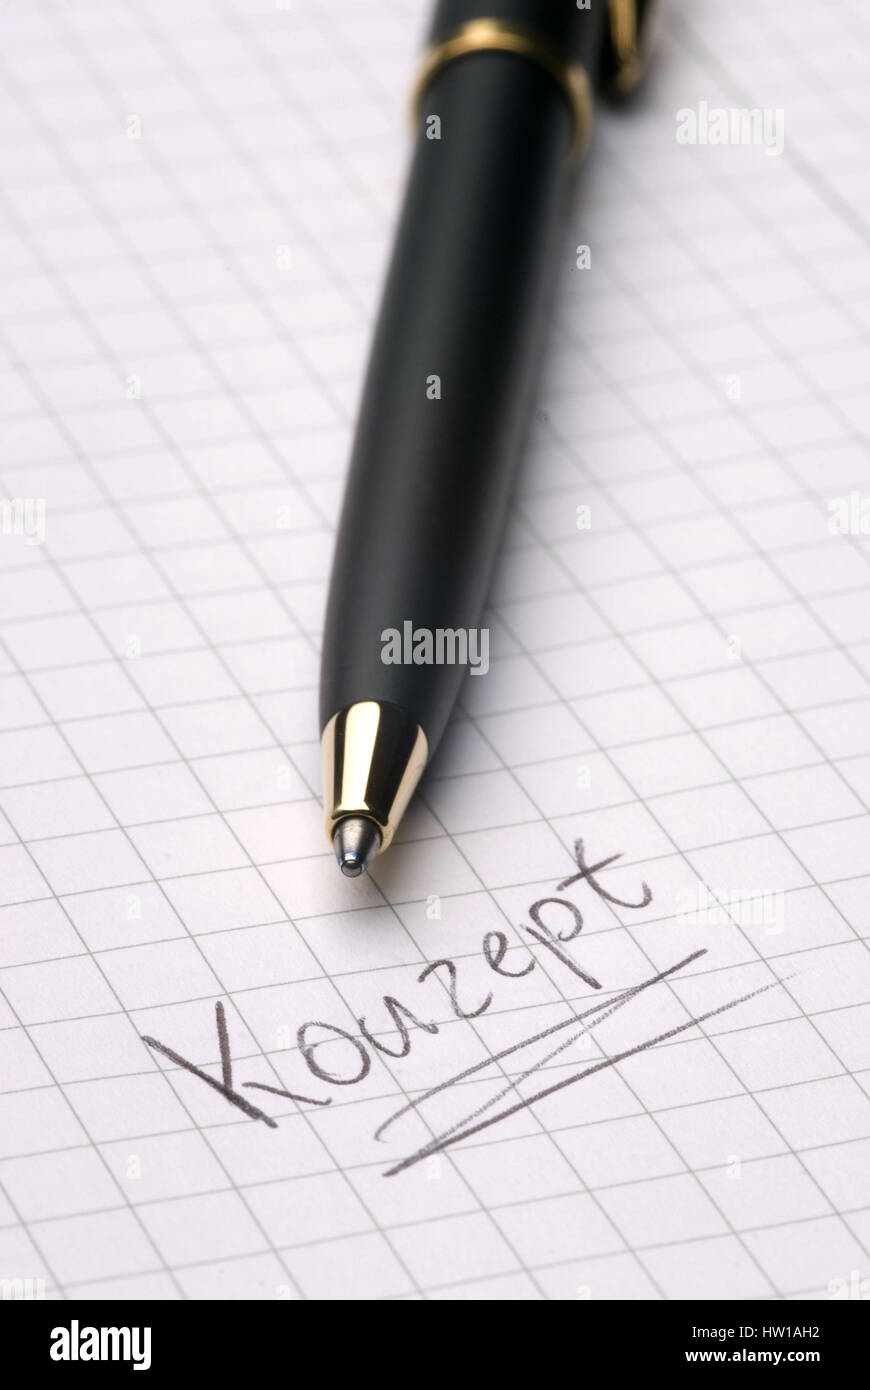 Symbolbild Konzept *** lokalen Caption *** Stockbild